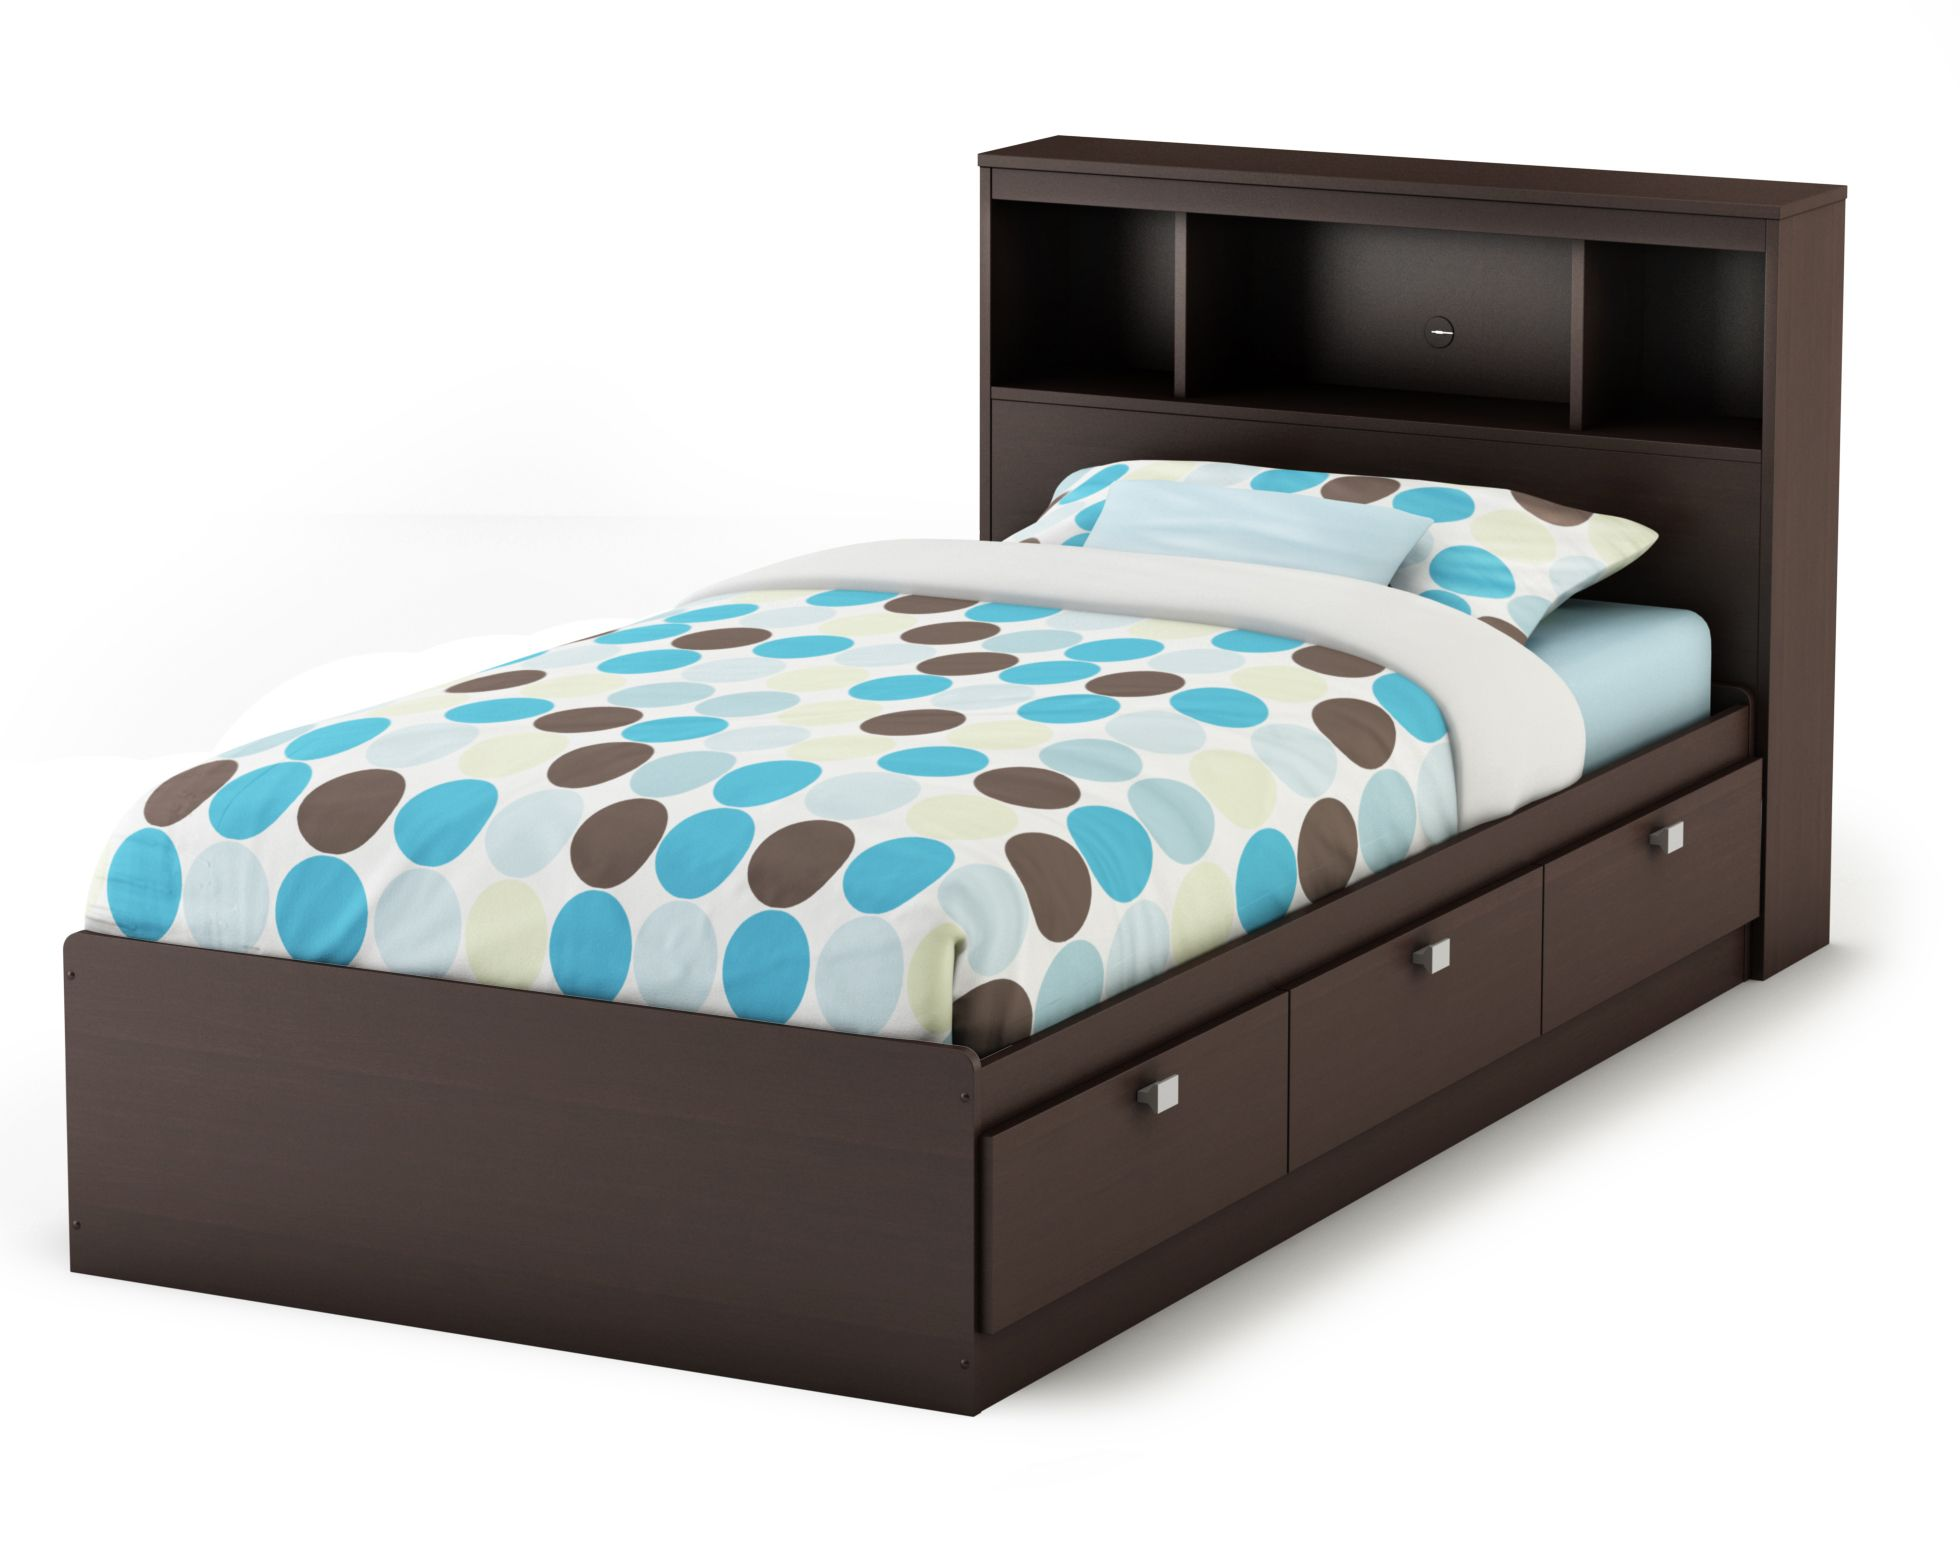 Twin bed with storage and headboard - Bedroom Stunning Espresso Twin Size Bed Frame With Headboard And Storage Inside Also Have Three